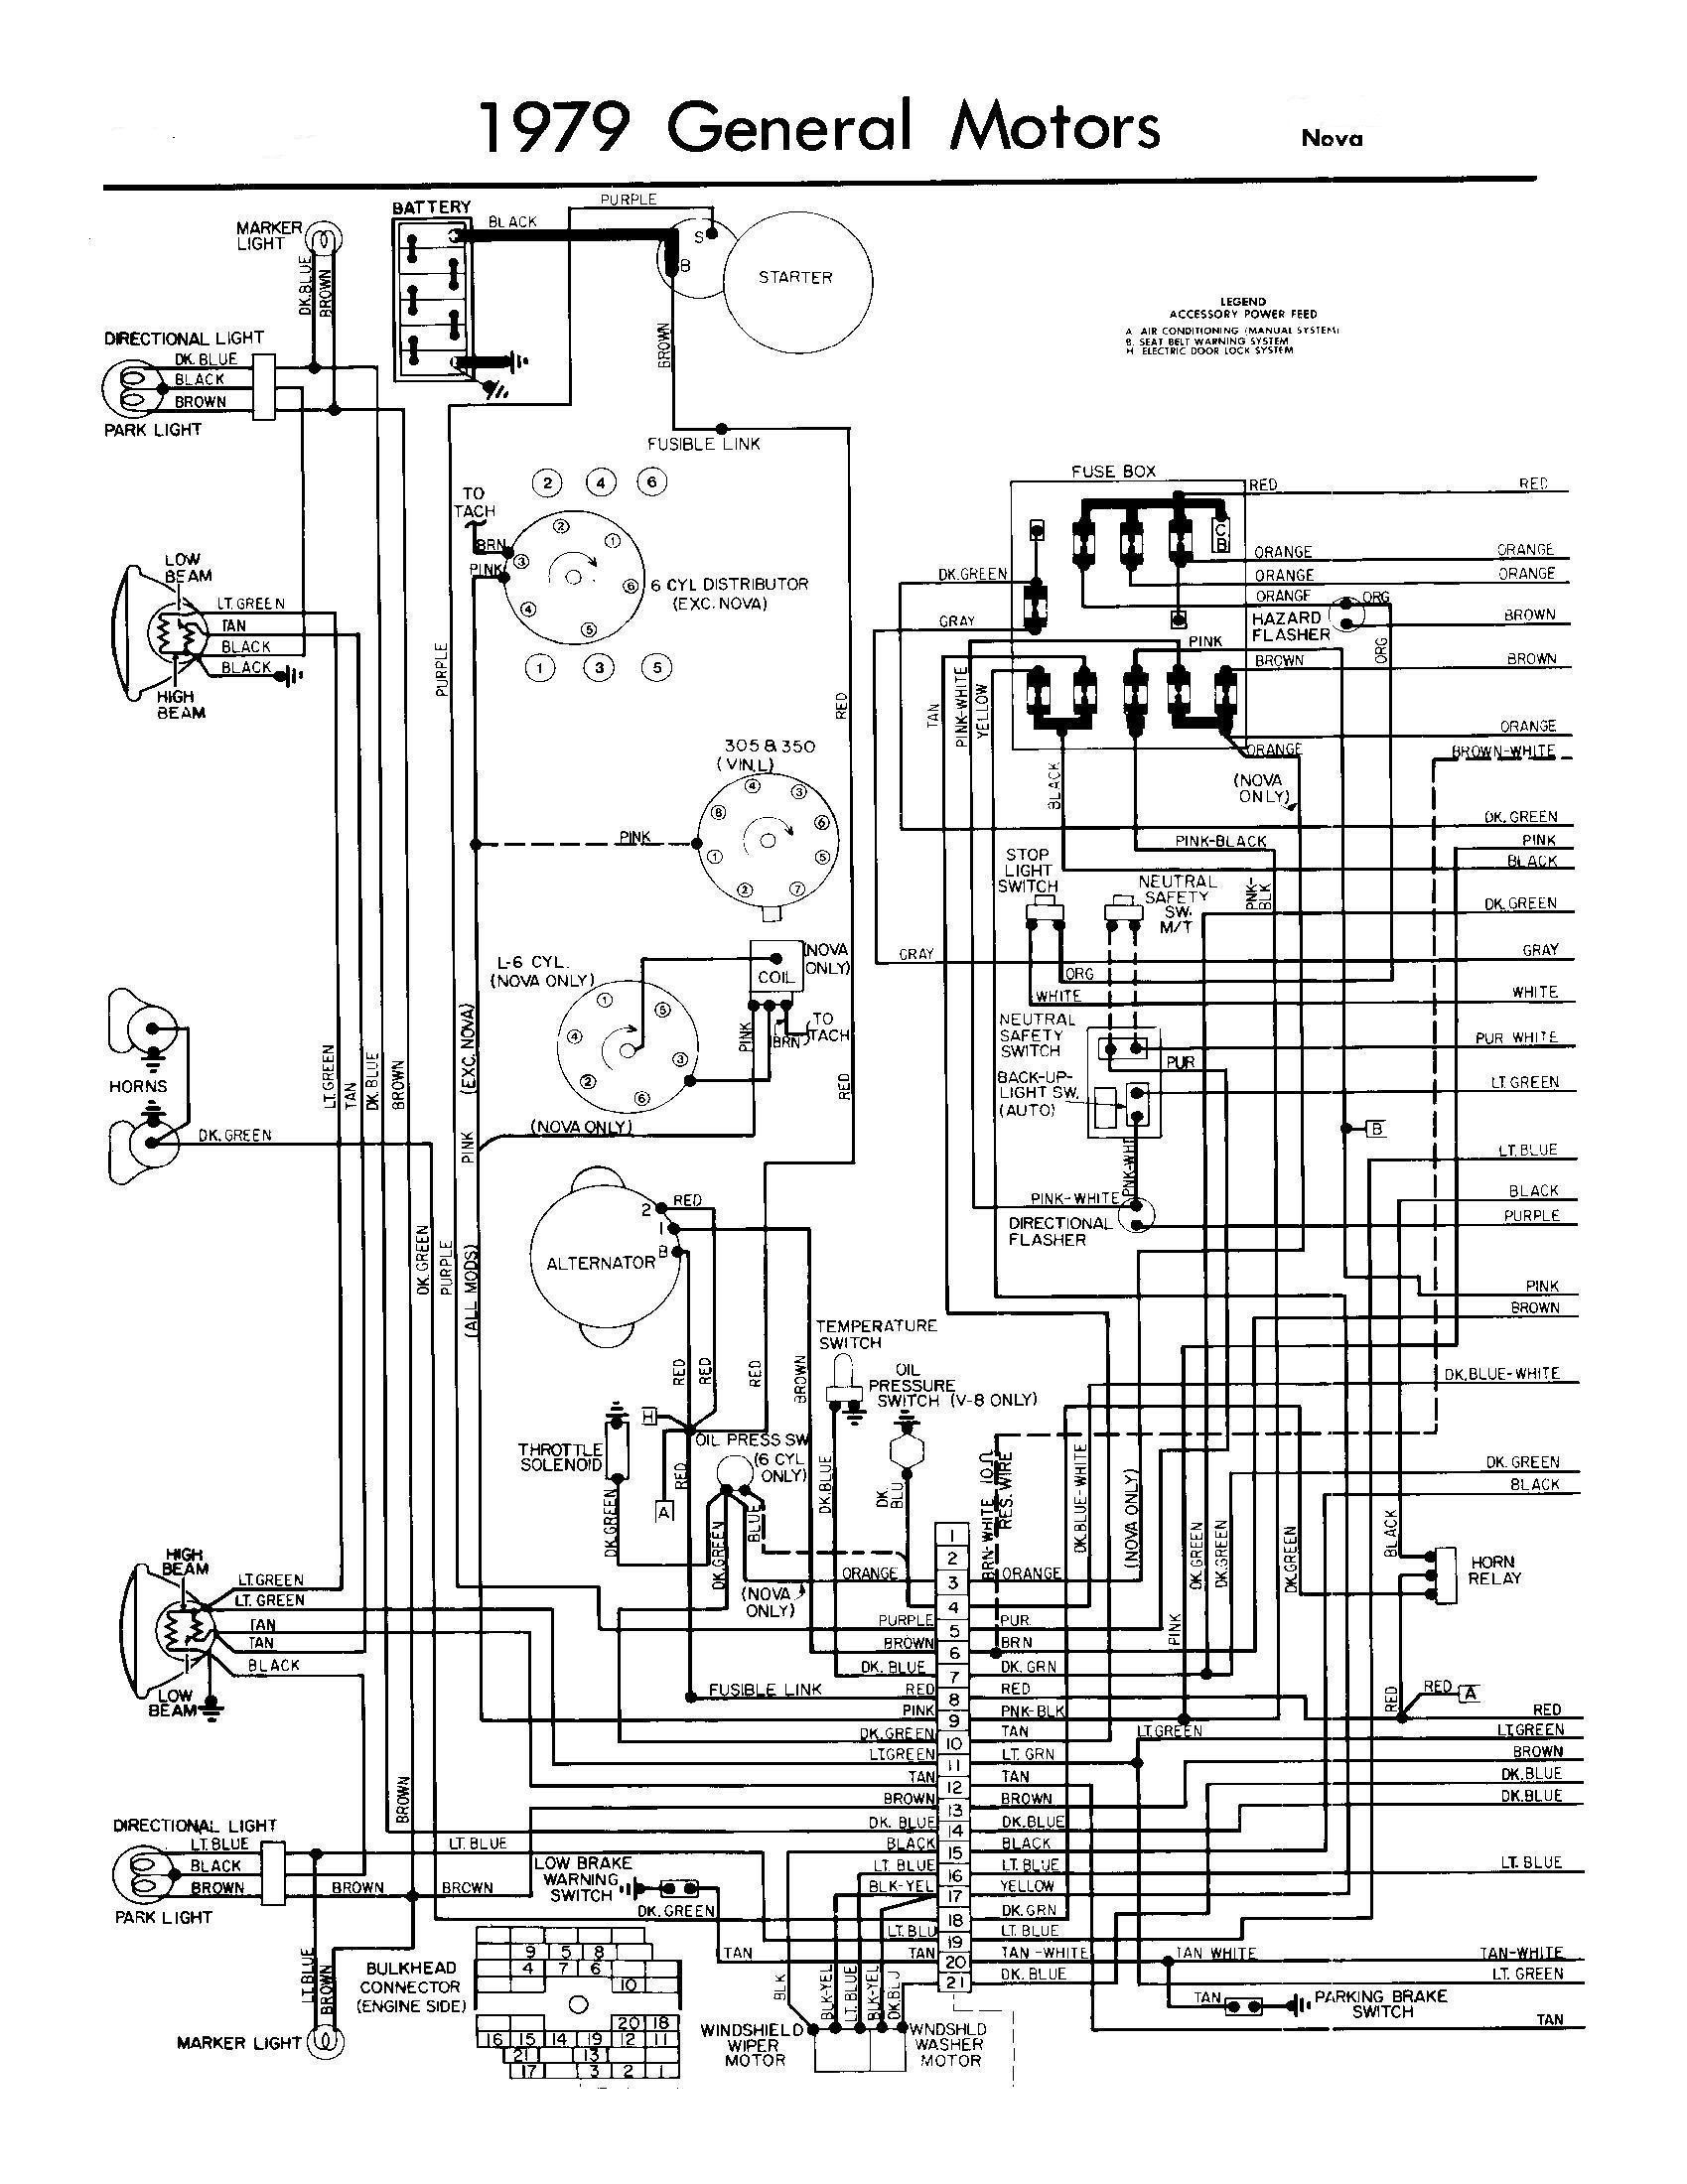 1975 corvette fuse box explained wiring diagrams rh sbsun co 1979 Chevy Fuse  Box Diagram GM